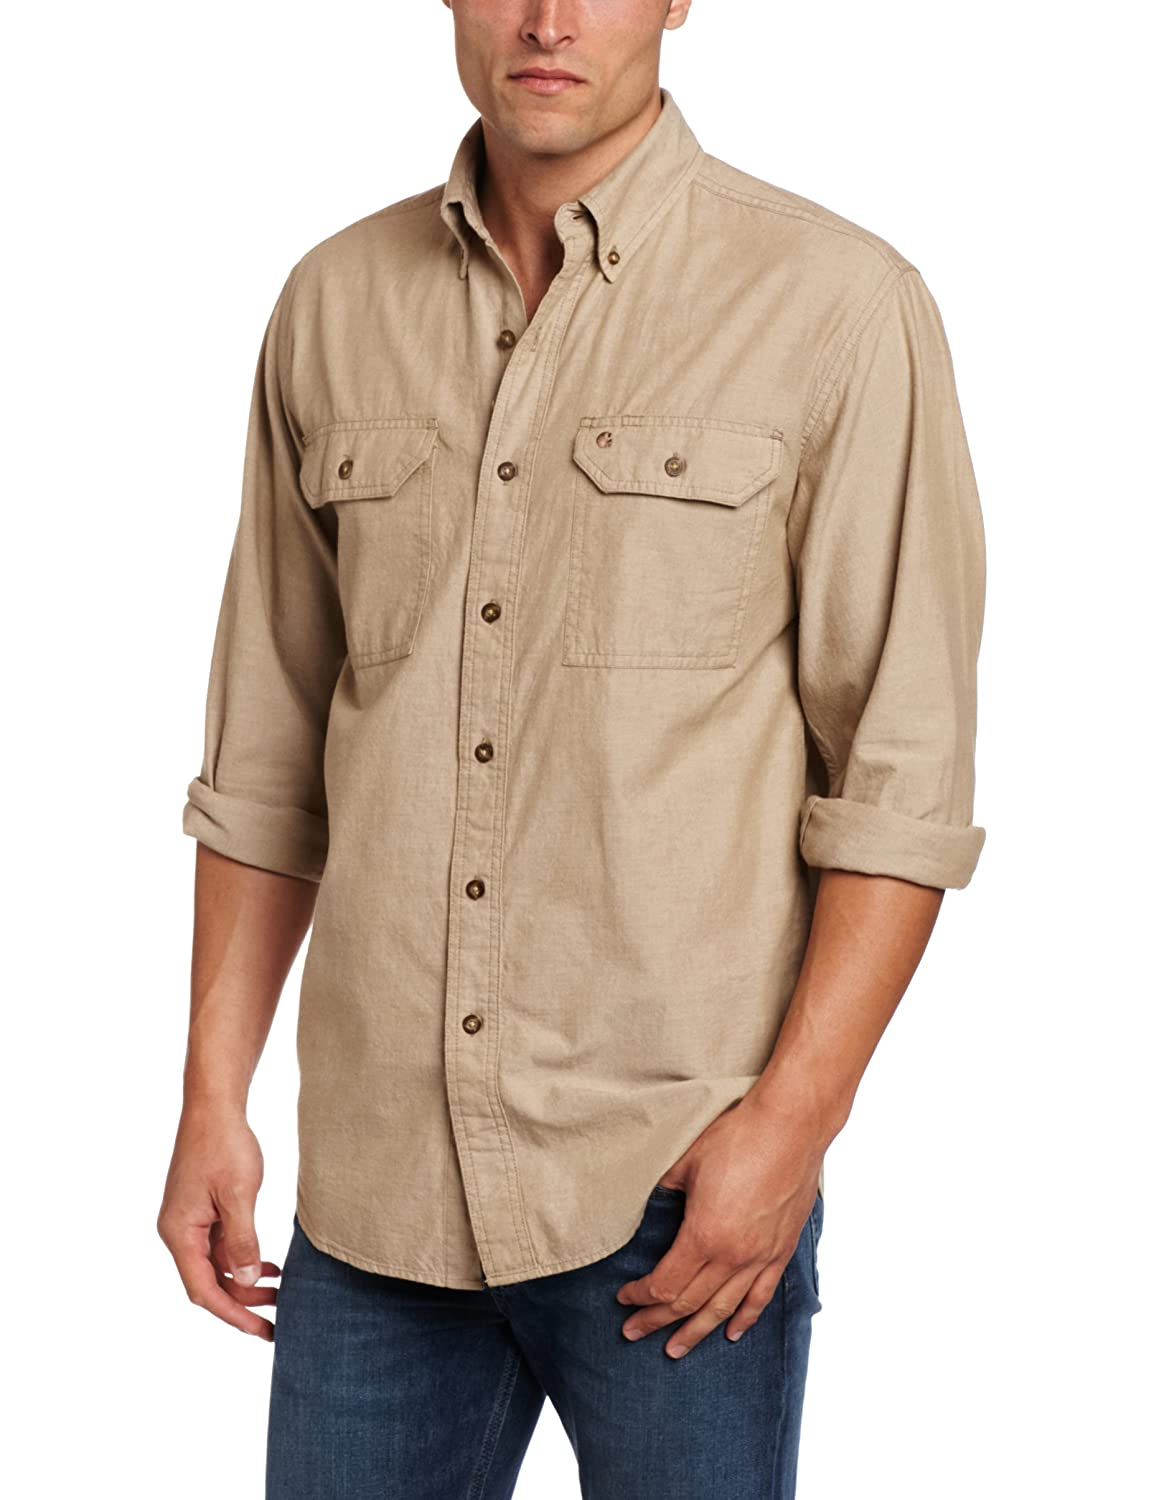 Amazon.com: Carhartt Men's Fort Lightweight Chambray Button Front ...